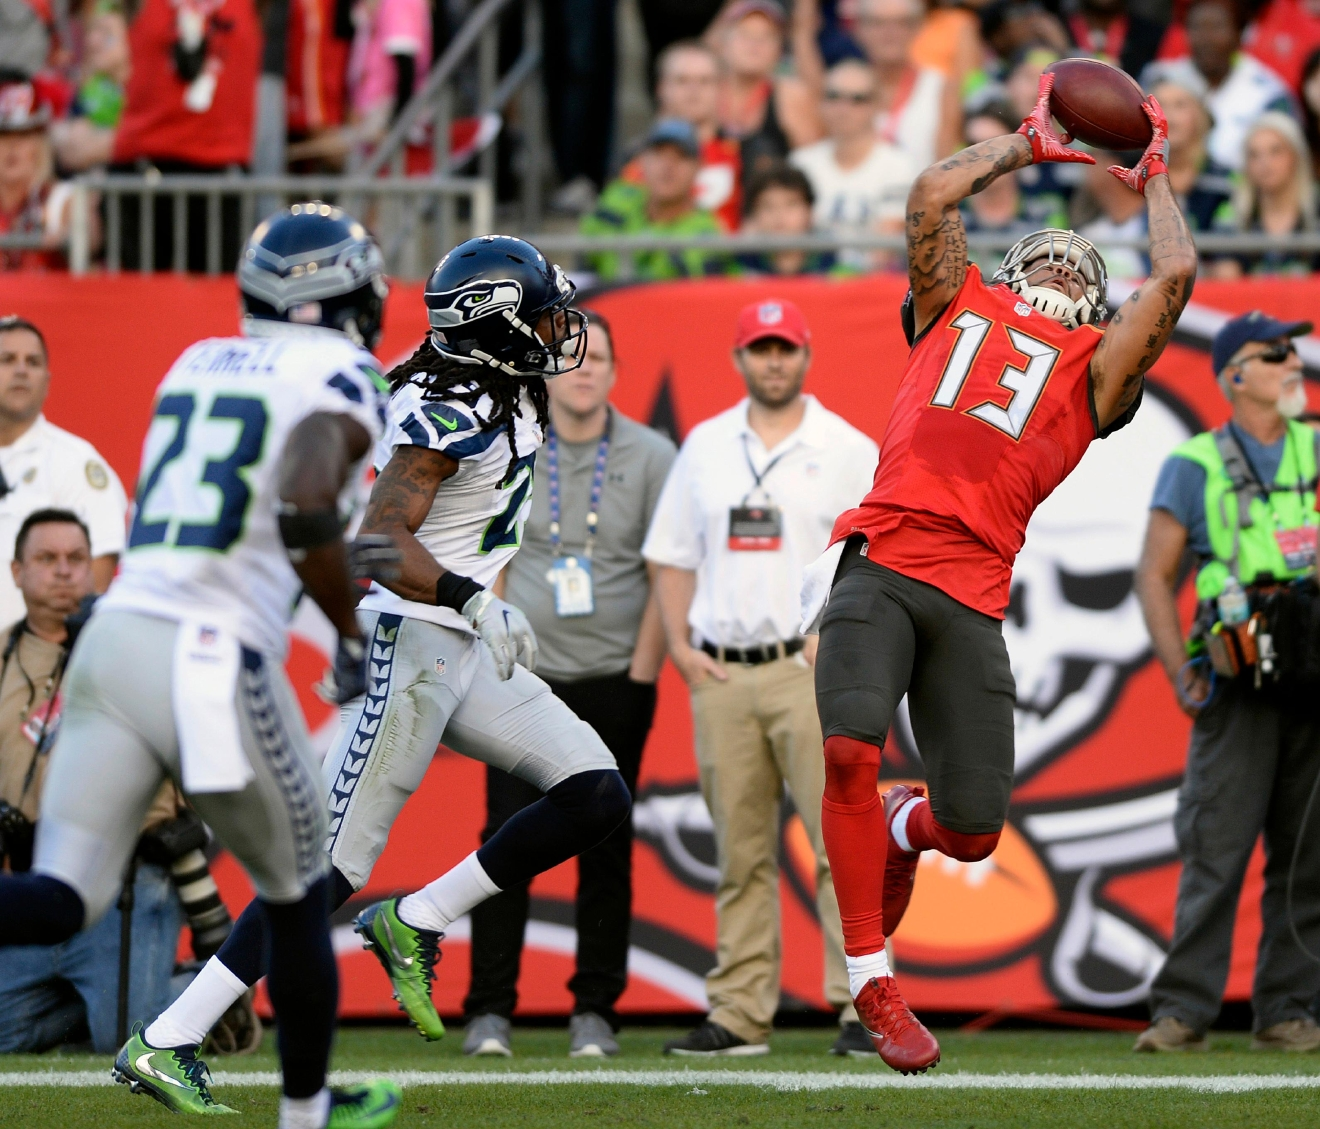 Tampa Bay Buccaneers wide receiver Mike Evans (13) catches a 23-yard touchdown reception in front of Seattle Seahawks cornerback Richard Sherman (25) and free safety Steven Terrell (23) during the first quarter of an NFL football game Sunday, Nov. 27, 2016, in Tampa, Fla. (AP Photo/Jason Behnken)